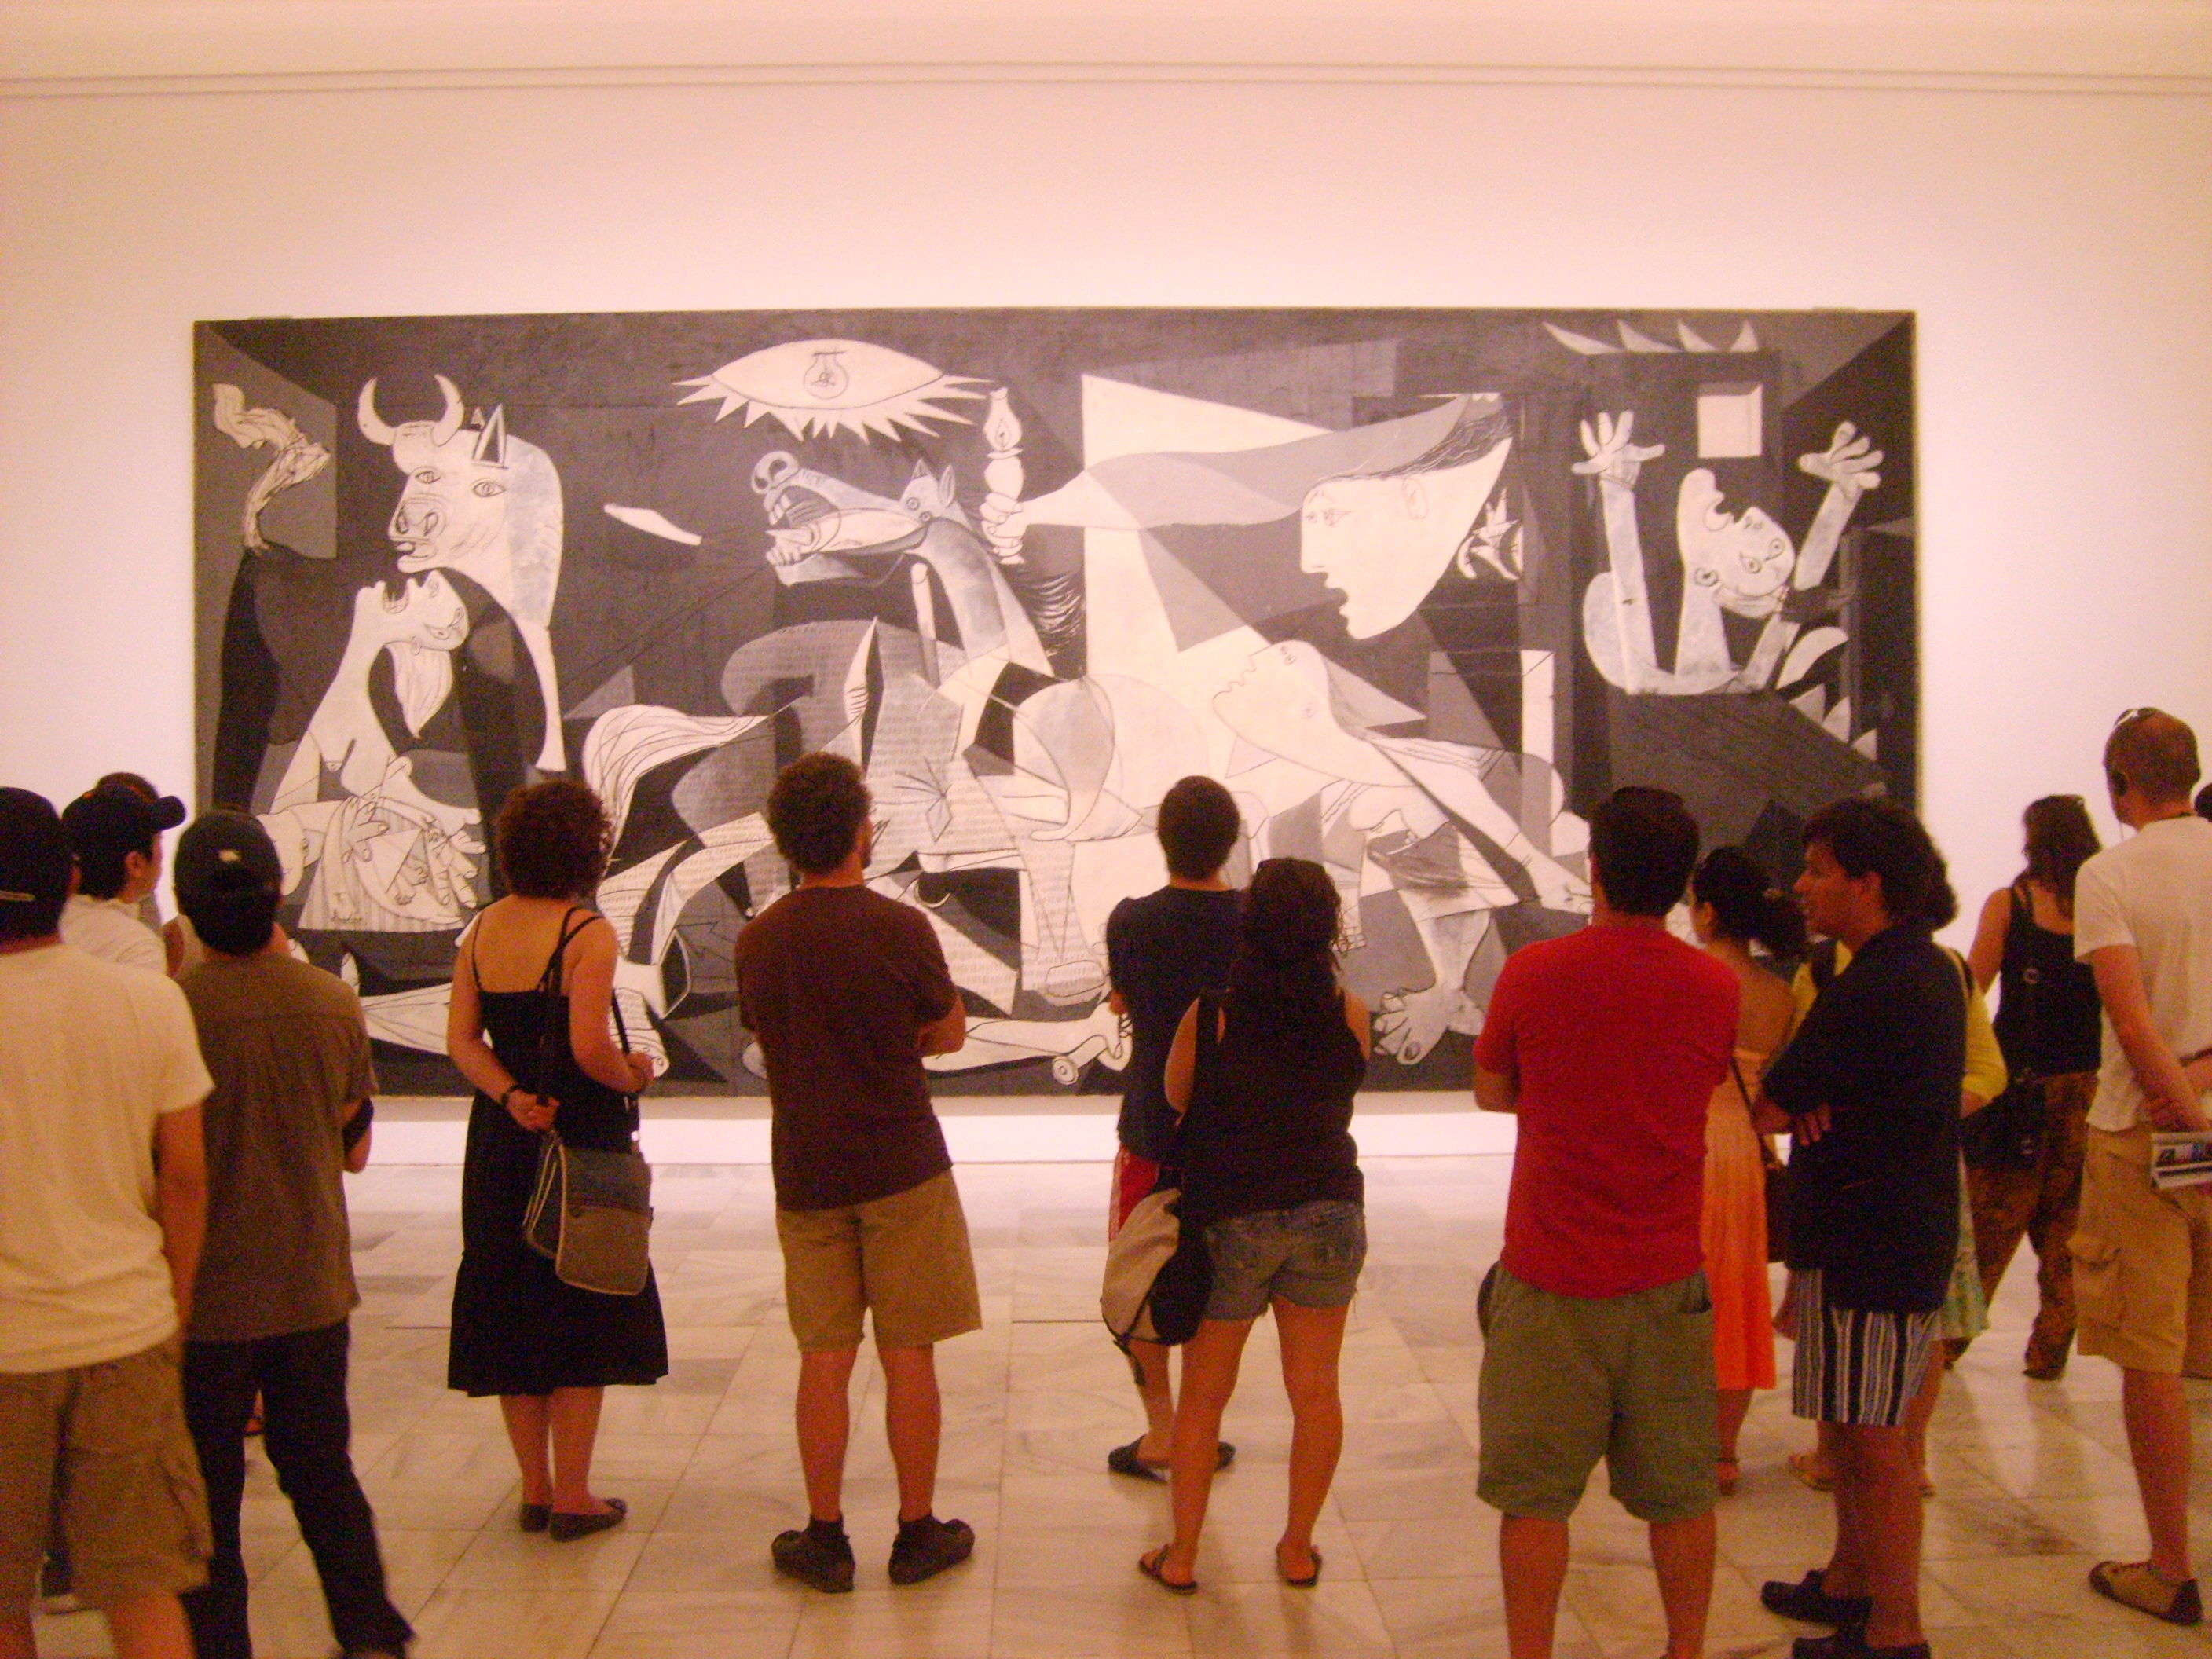 synthesis of guernica oil painting Picasso's guernica painting share flipboard email print the painting is an enormous mural-sized oil painting on canvas that is about eleven feet tall and twenty-five feet wide its size and scale contribute to its impact and power.